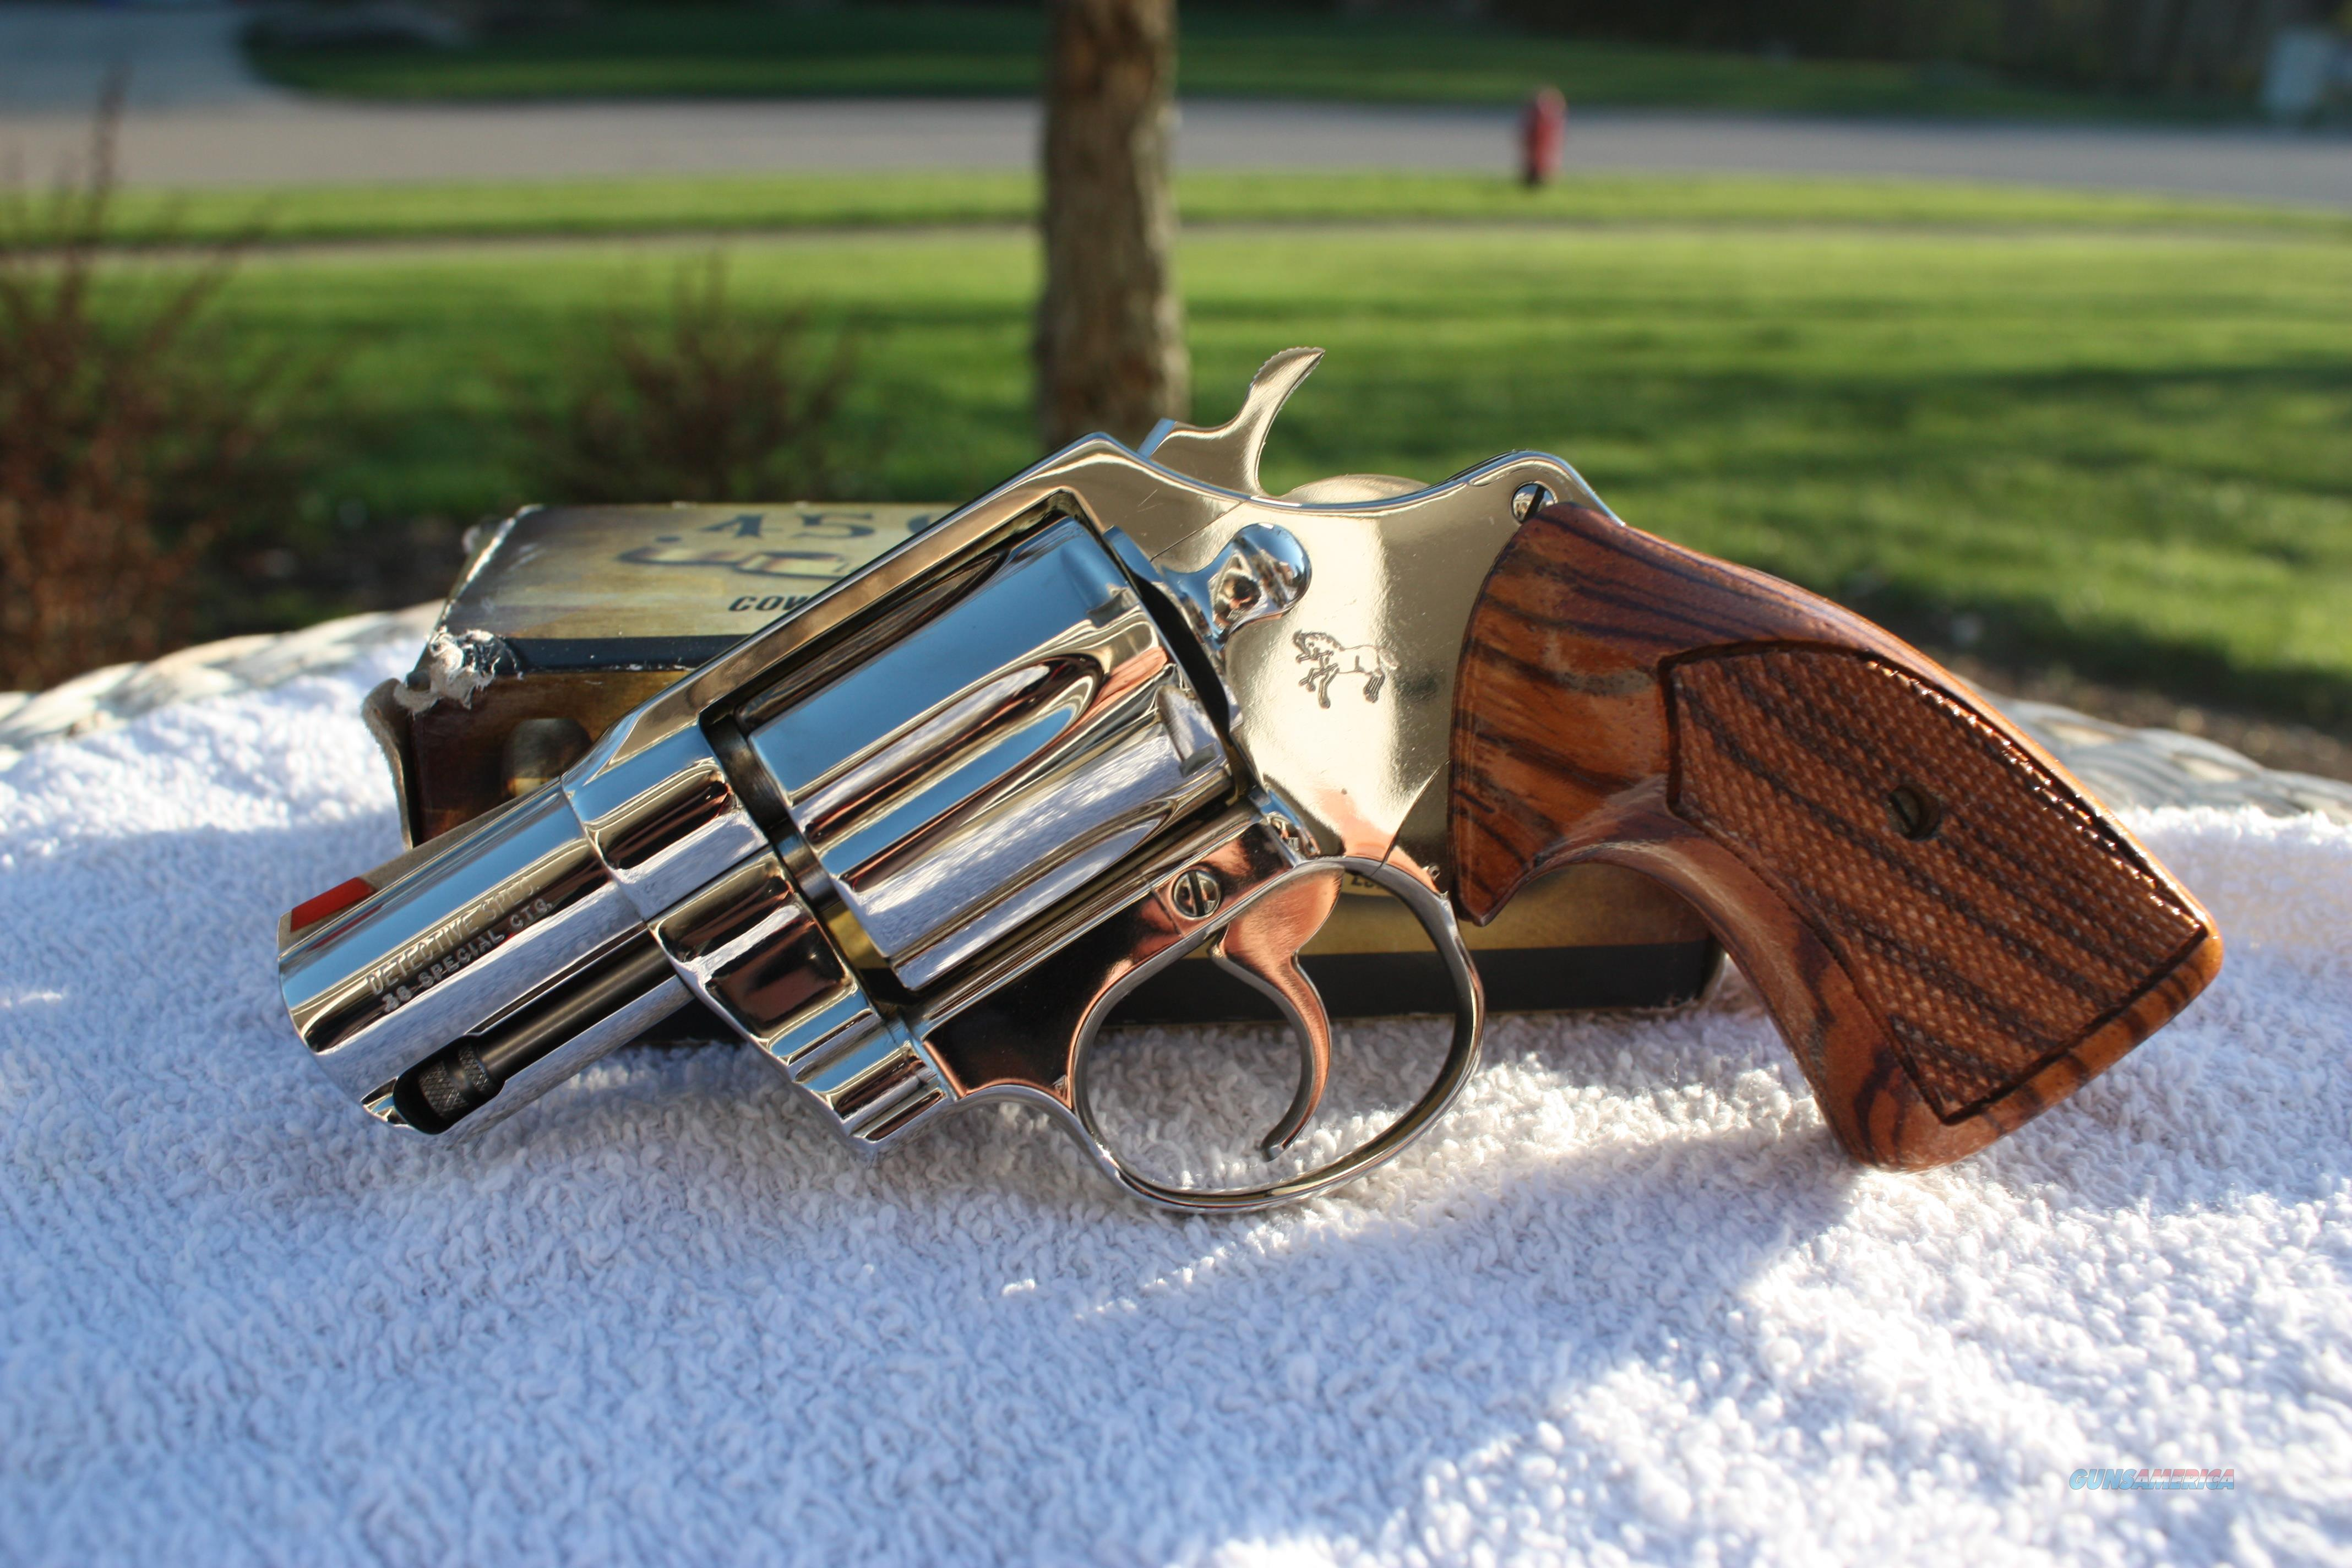 Colt Detective Special Nickel Red Ramp/Zebra Grips in Wood Case  Guns > Pistols > Colt Double Action Revolvers- Modern